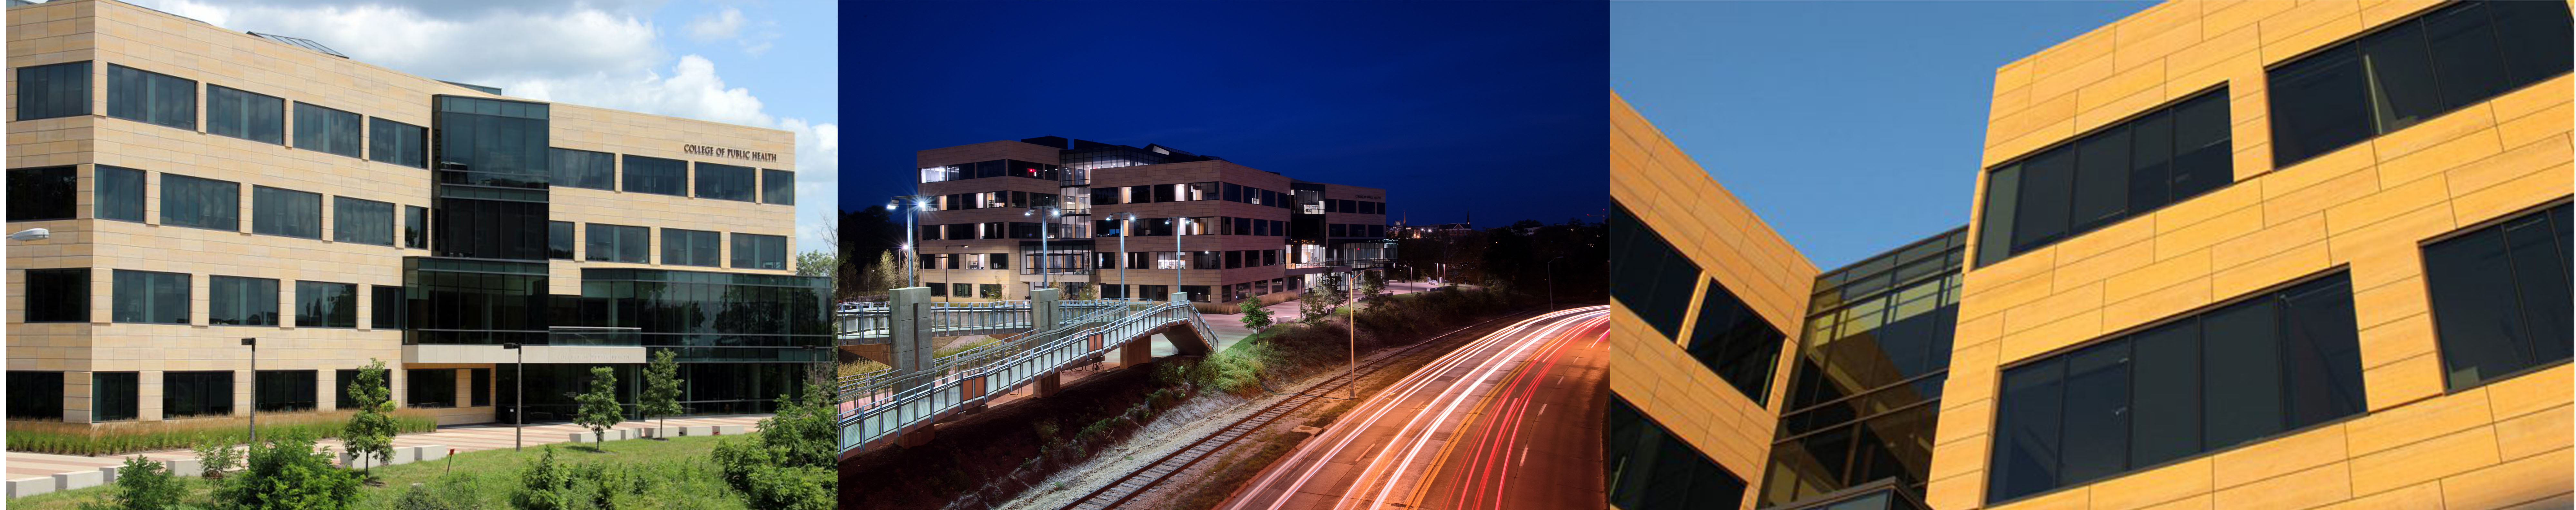 College of Public Health Building at blue hour/dusk